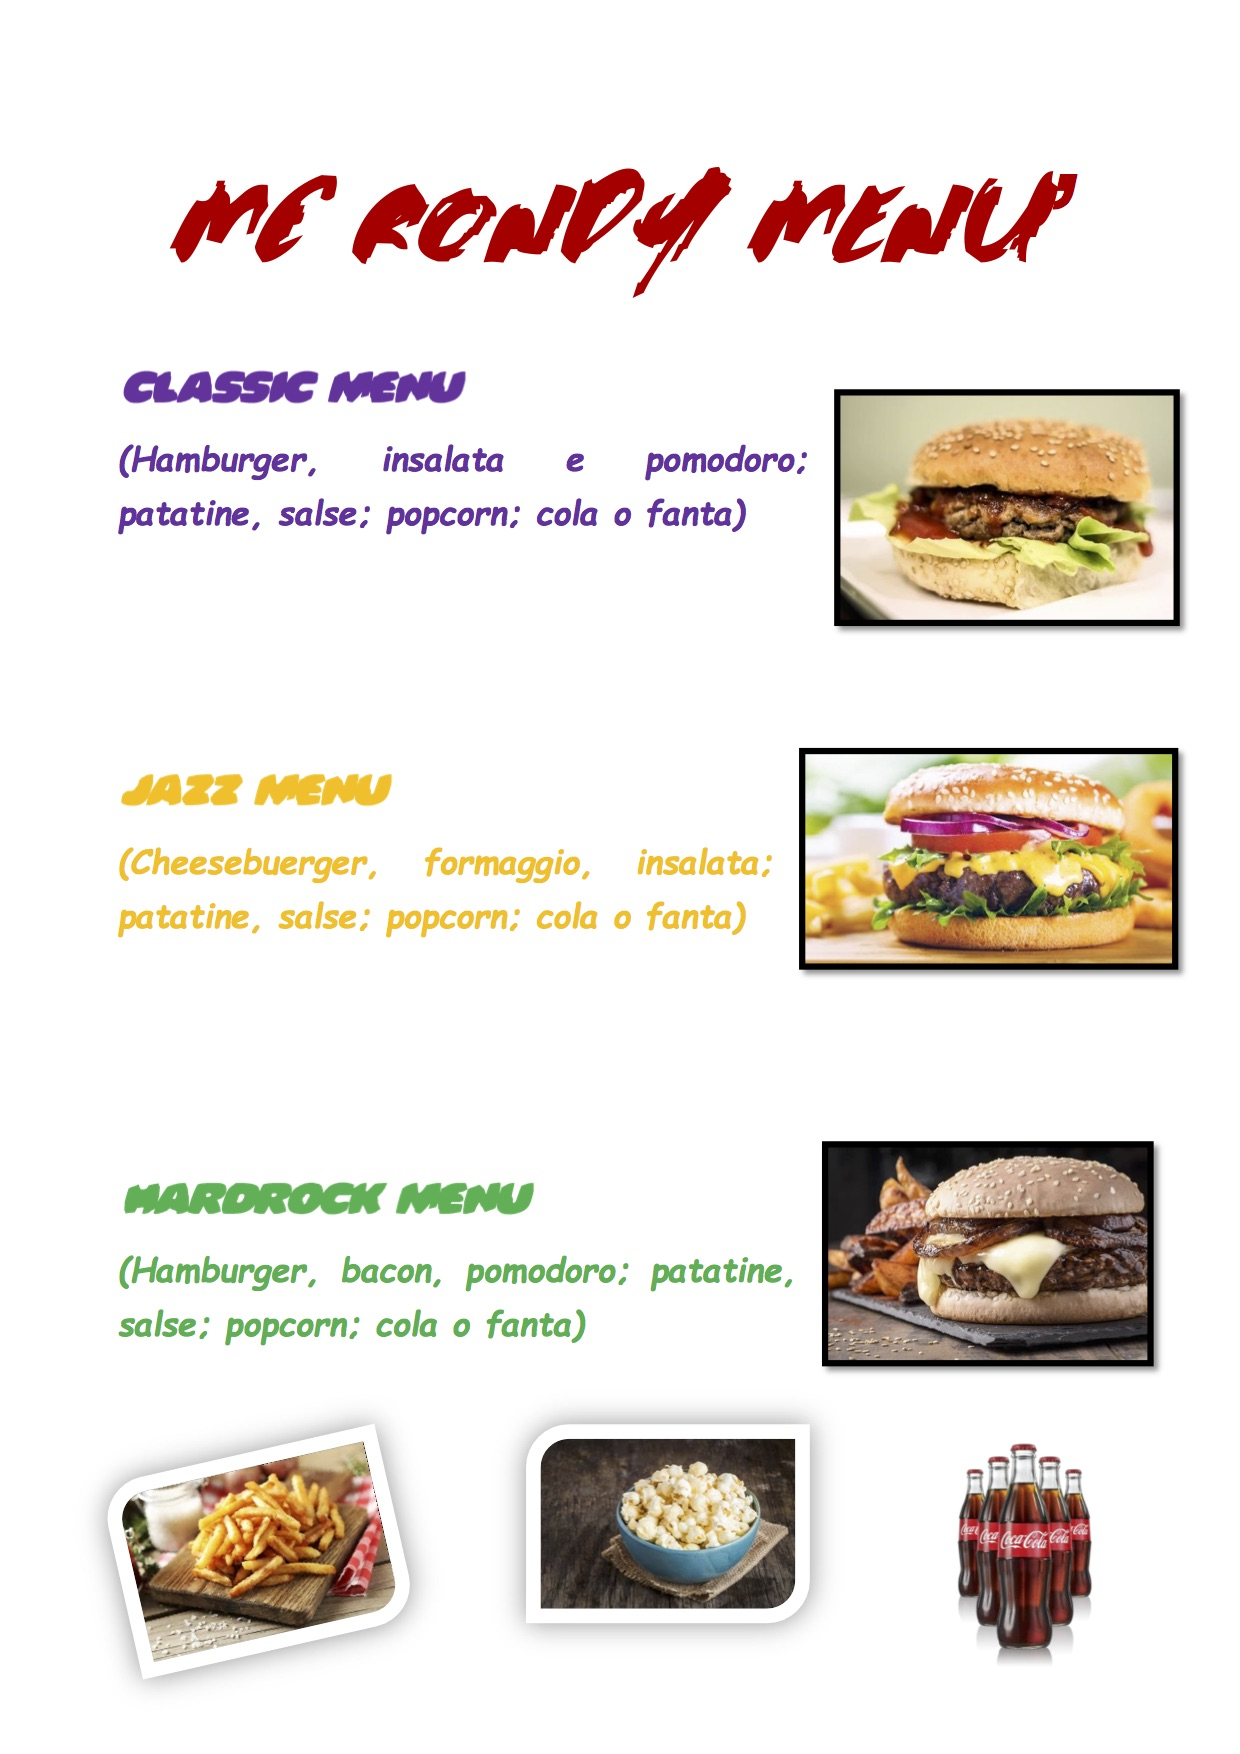 MC RONDY MENU